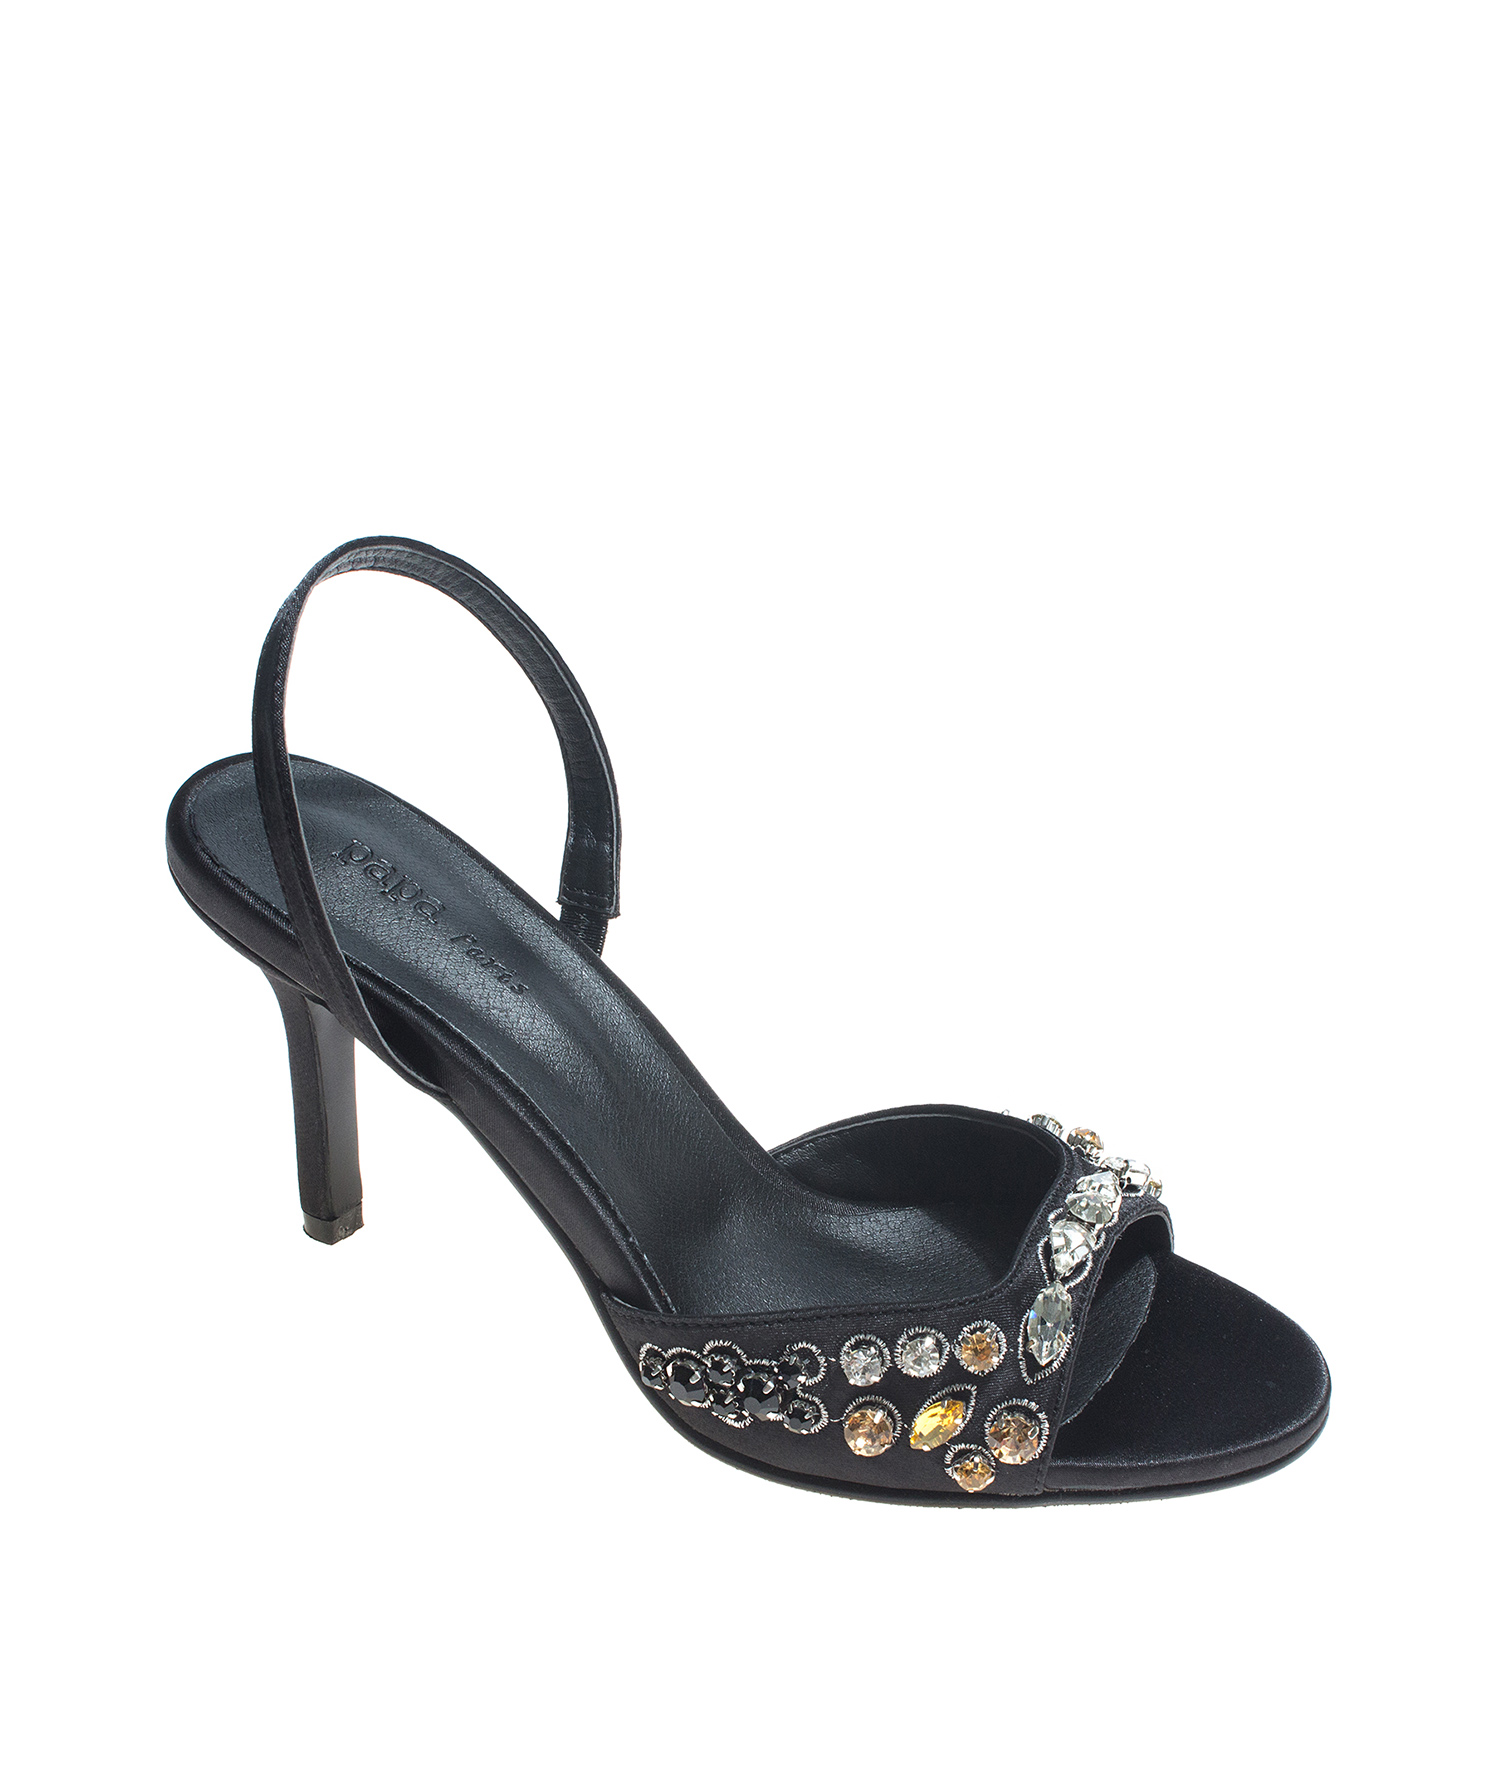 195fe93c306 AnnaKastle Womens Jewel Embellished Satin Slingback Sandals Black